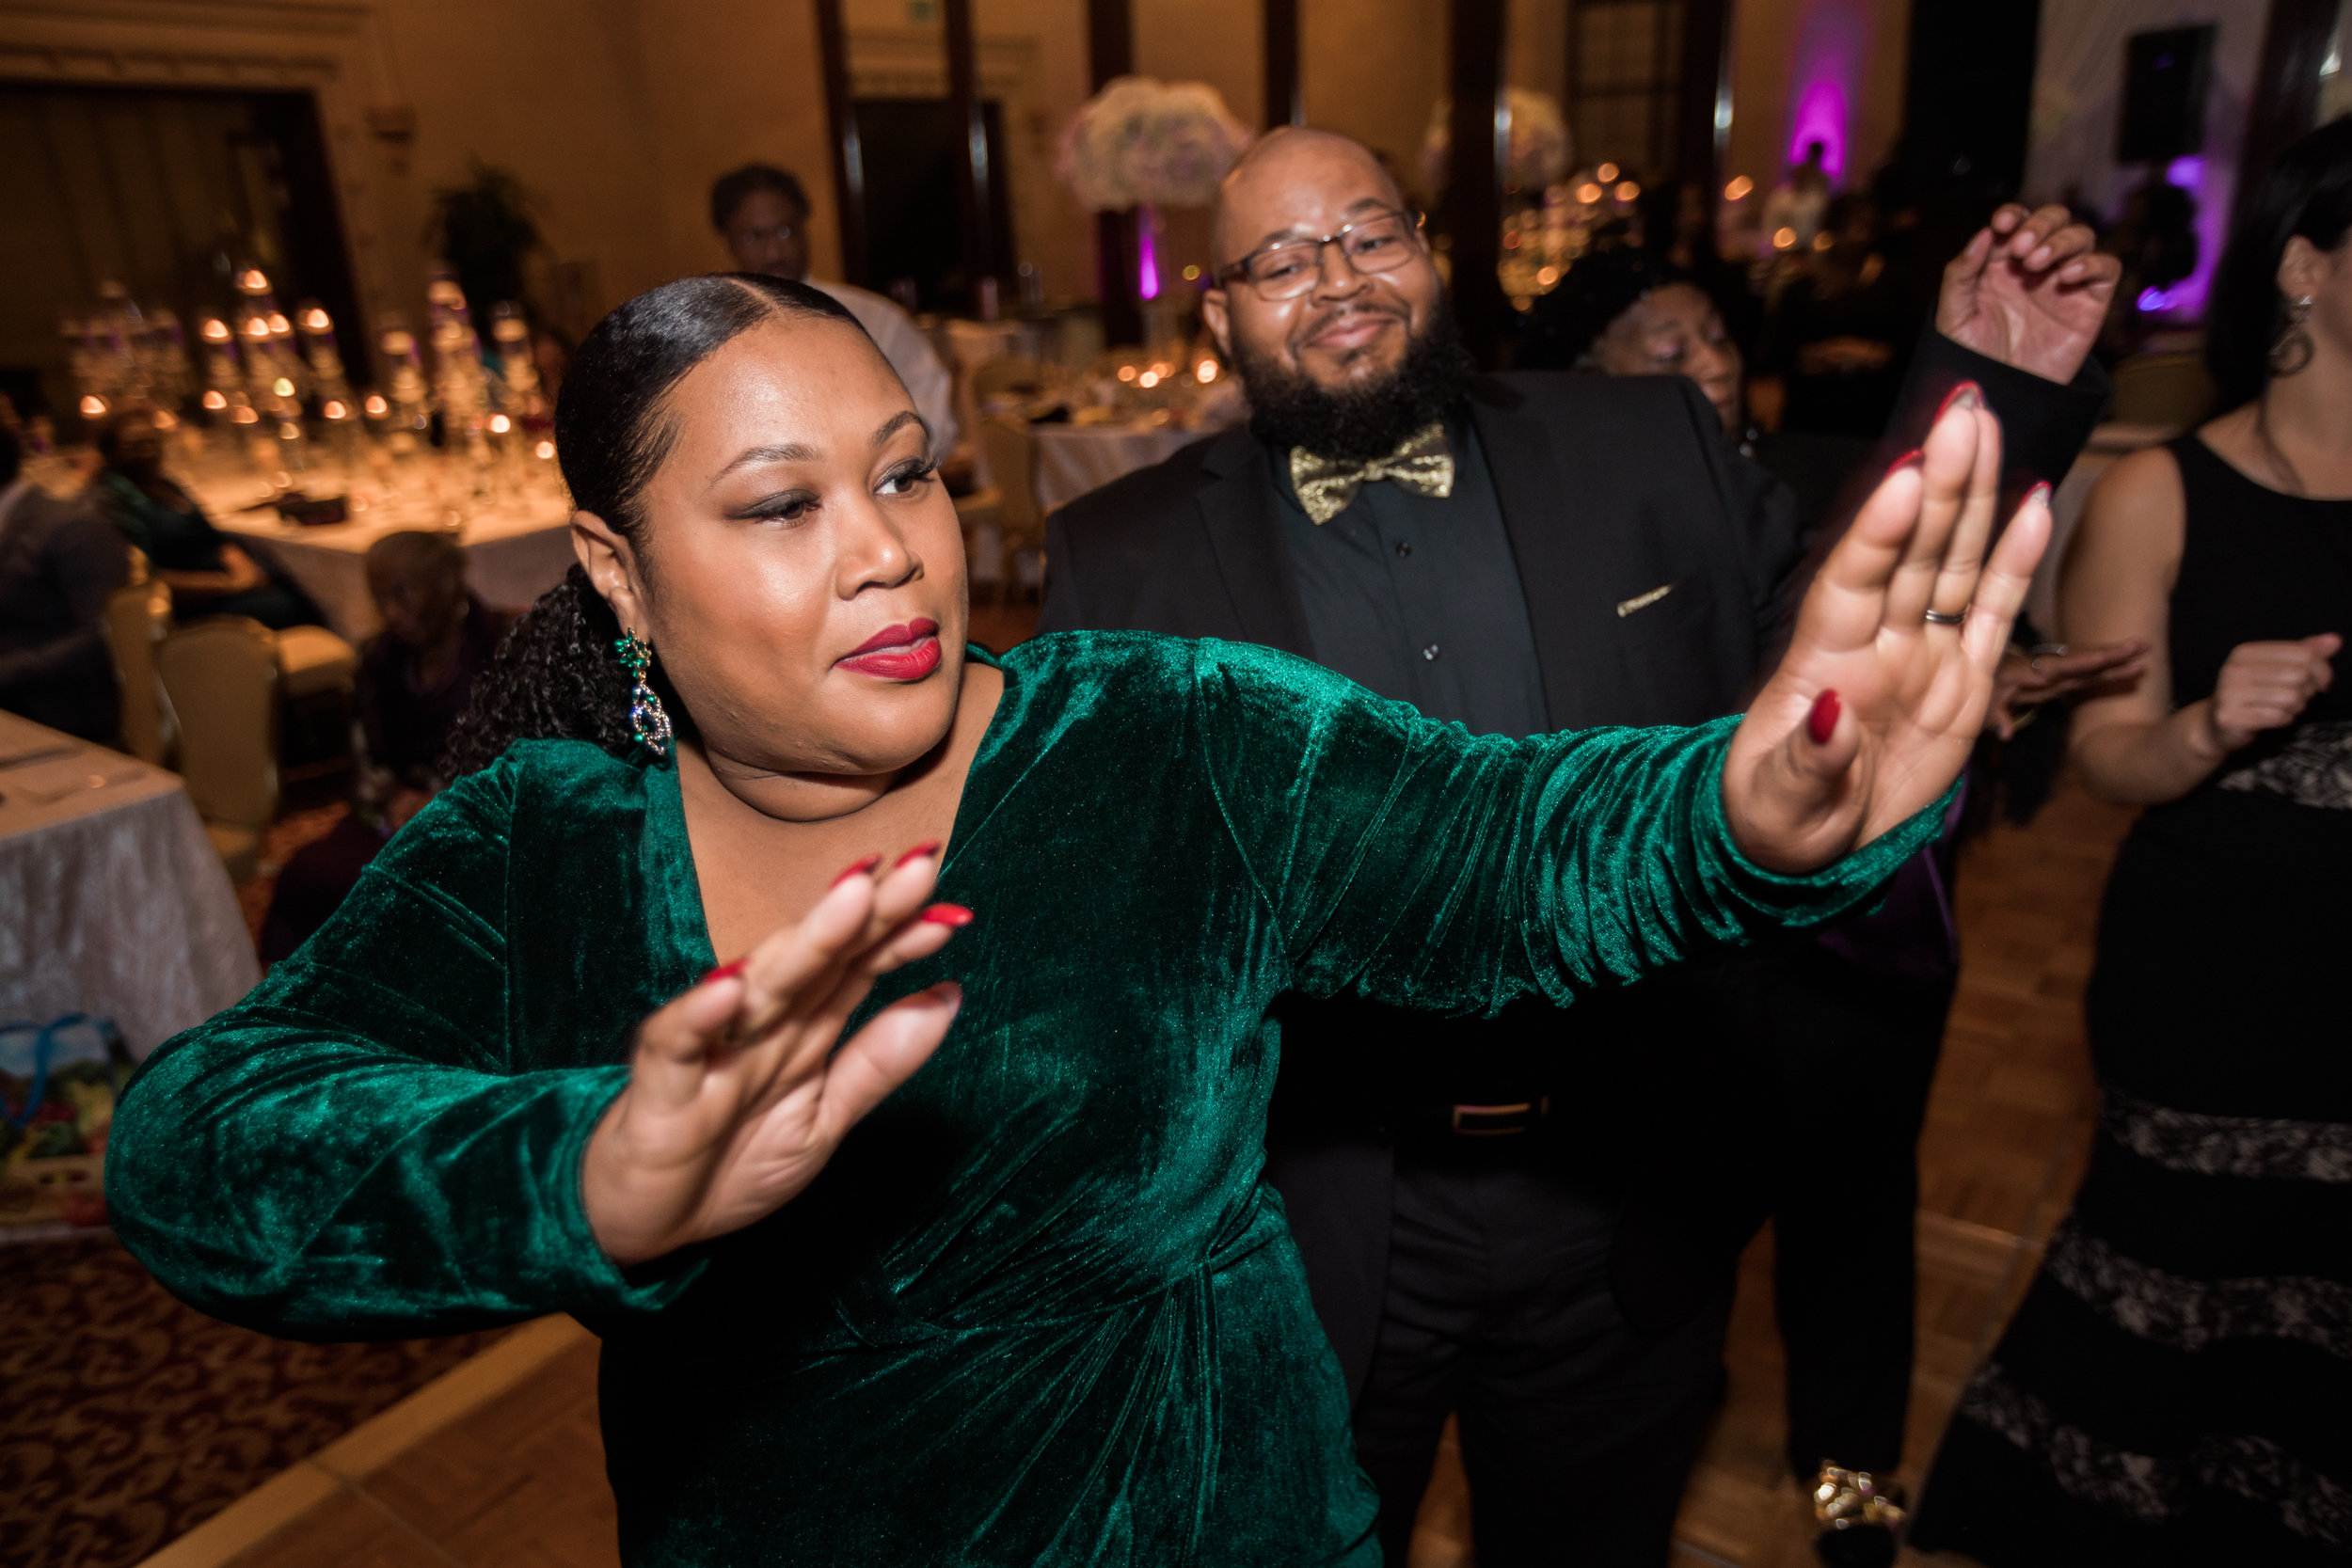 Best Classic Black Bride at The Grand Baltimore Maryland Husband and Wife Wedding Photographers Megapixels Media (87 of 98).jpg